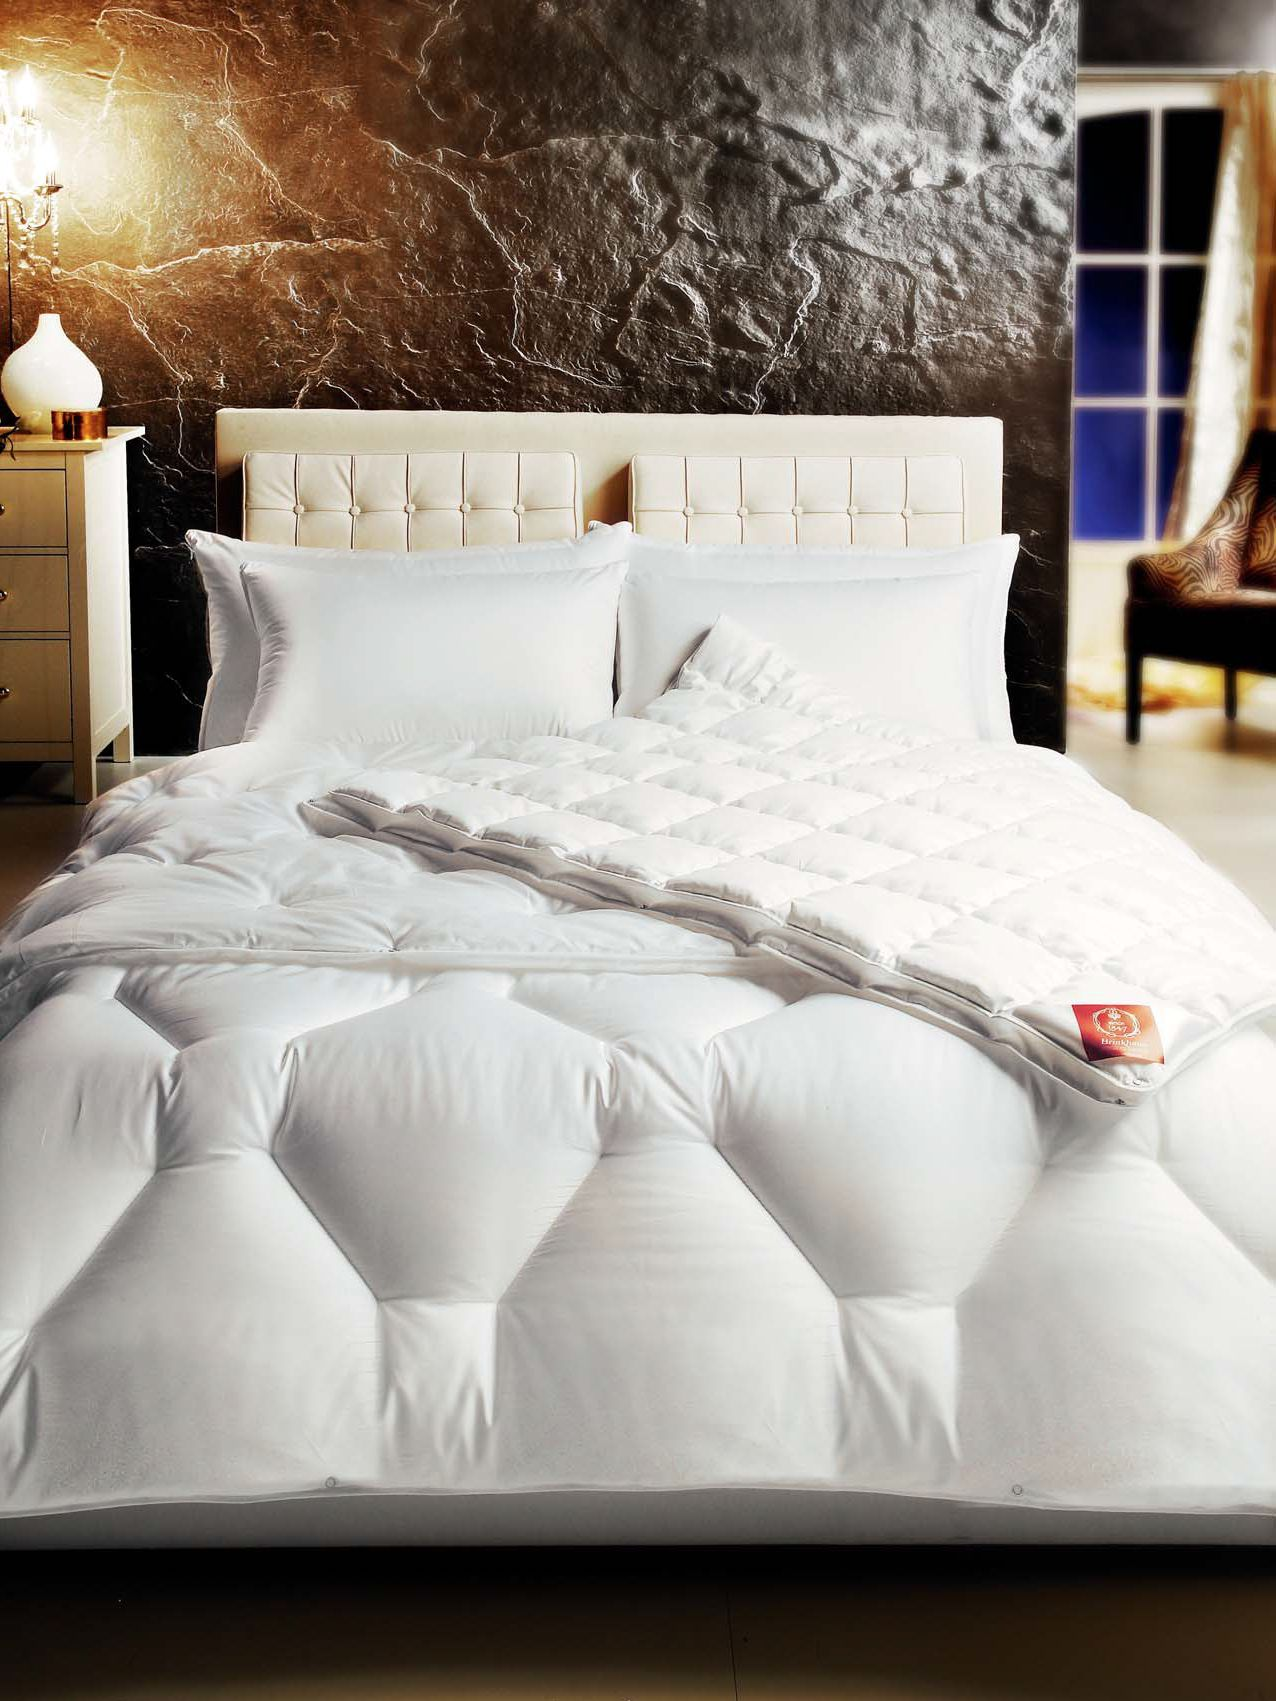 Image of Brinkhaus Bauschi Lux polyester double warm duvet